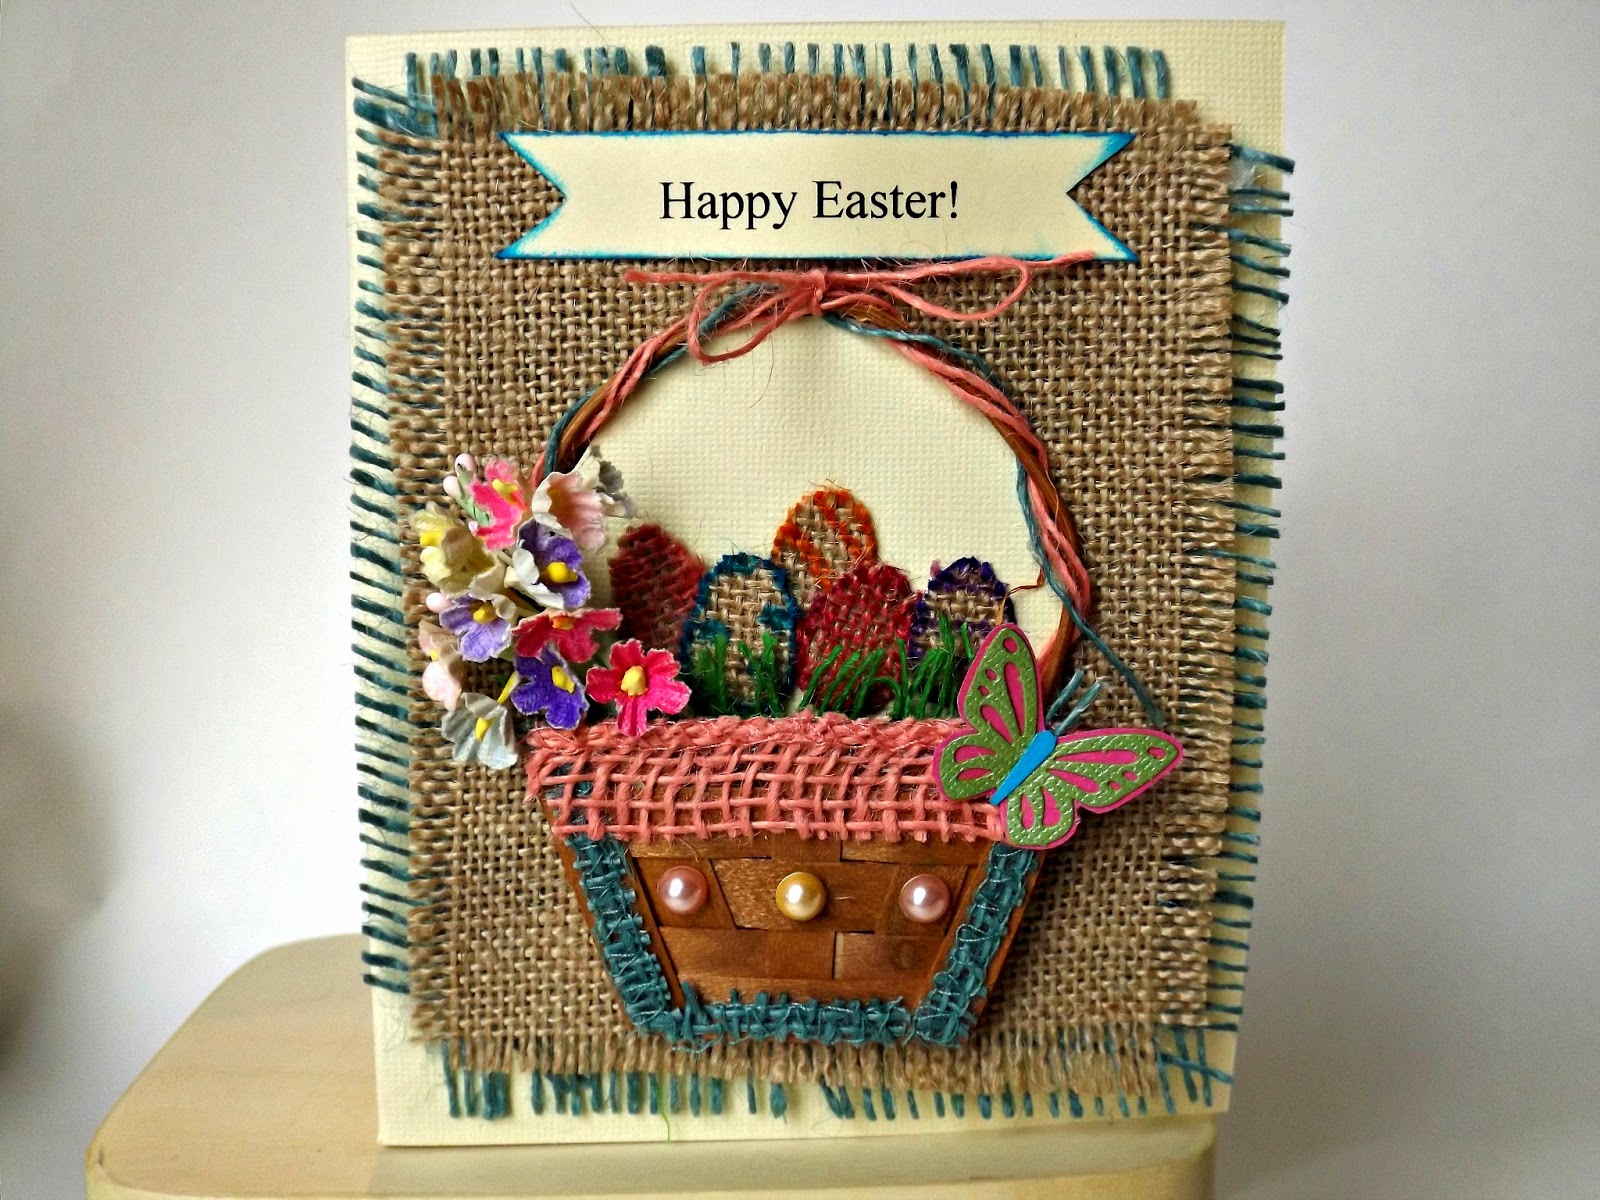 Magnetic Burlap Card for Easter - From Card to Decoration